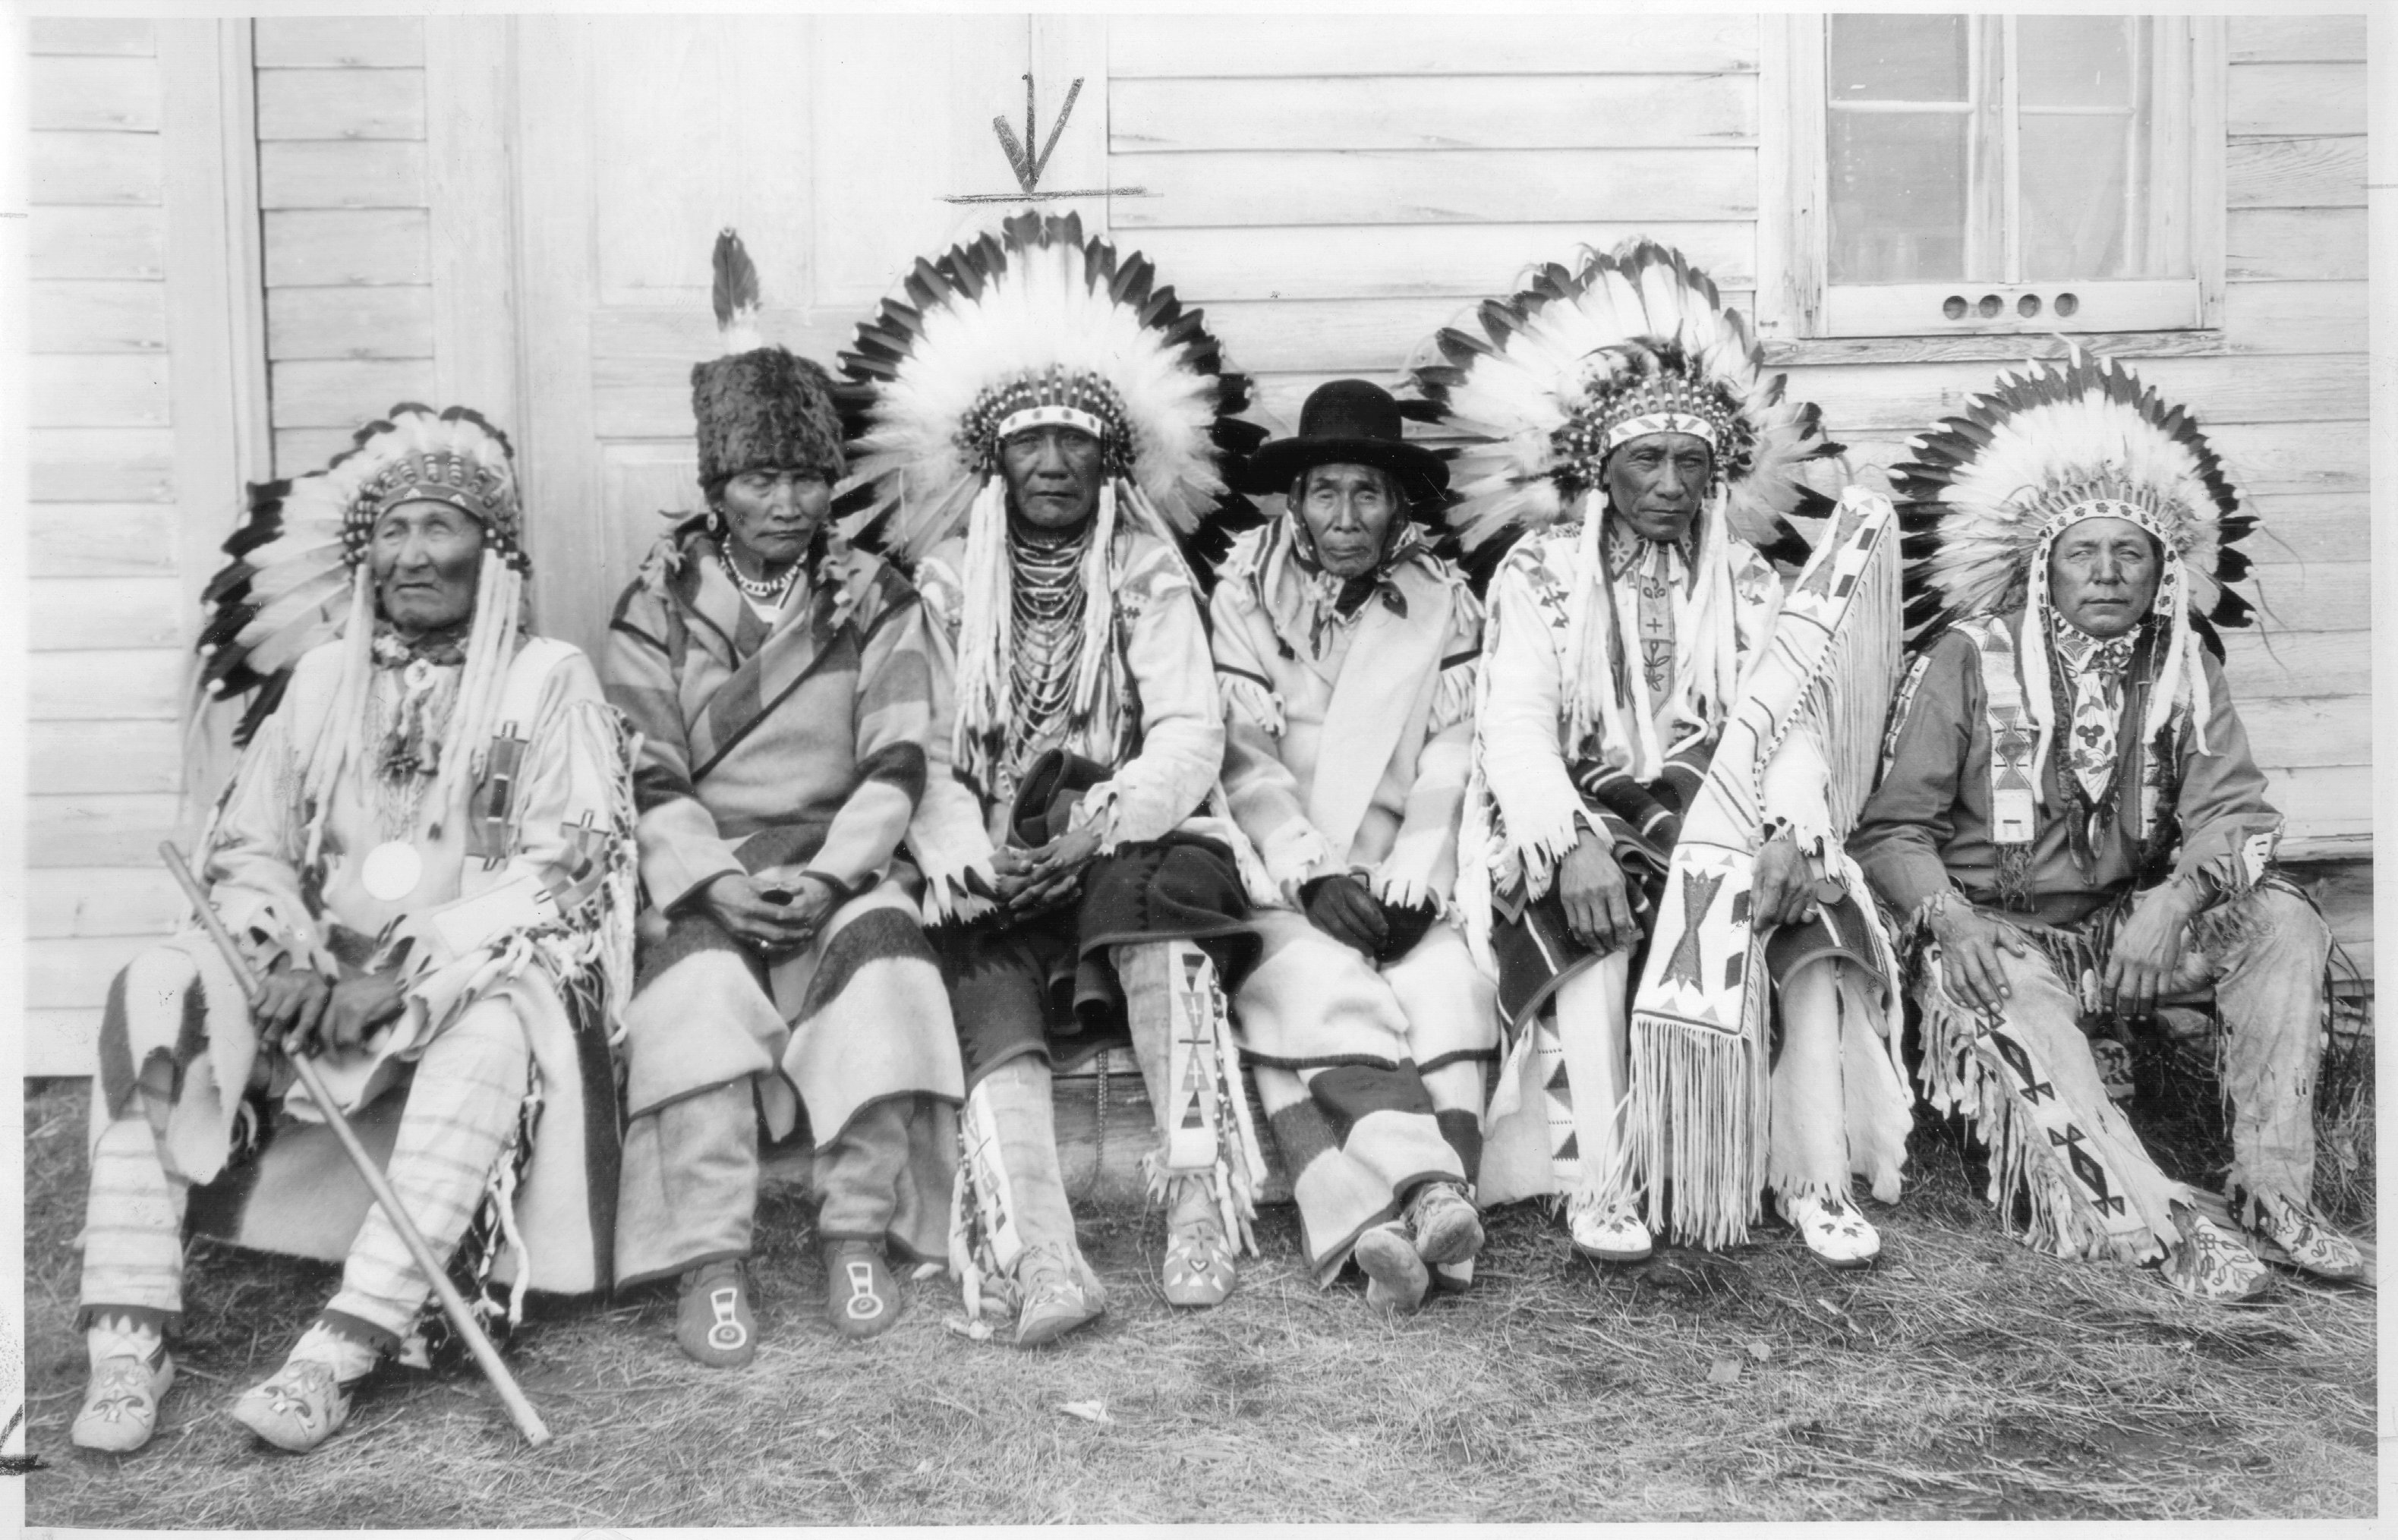 Feathers & Native American Indians